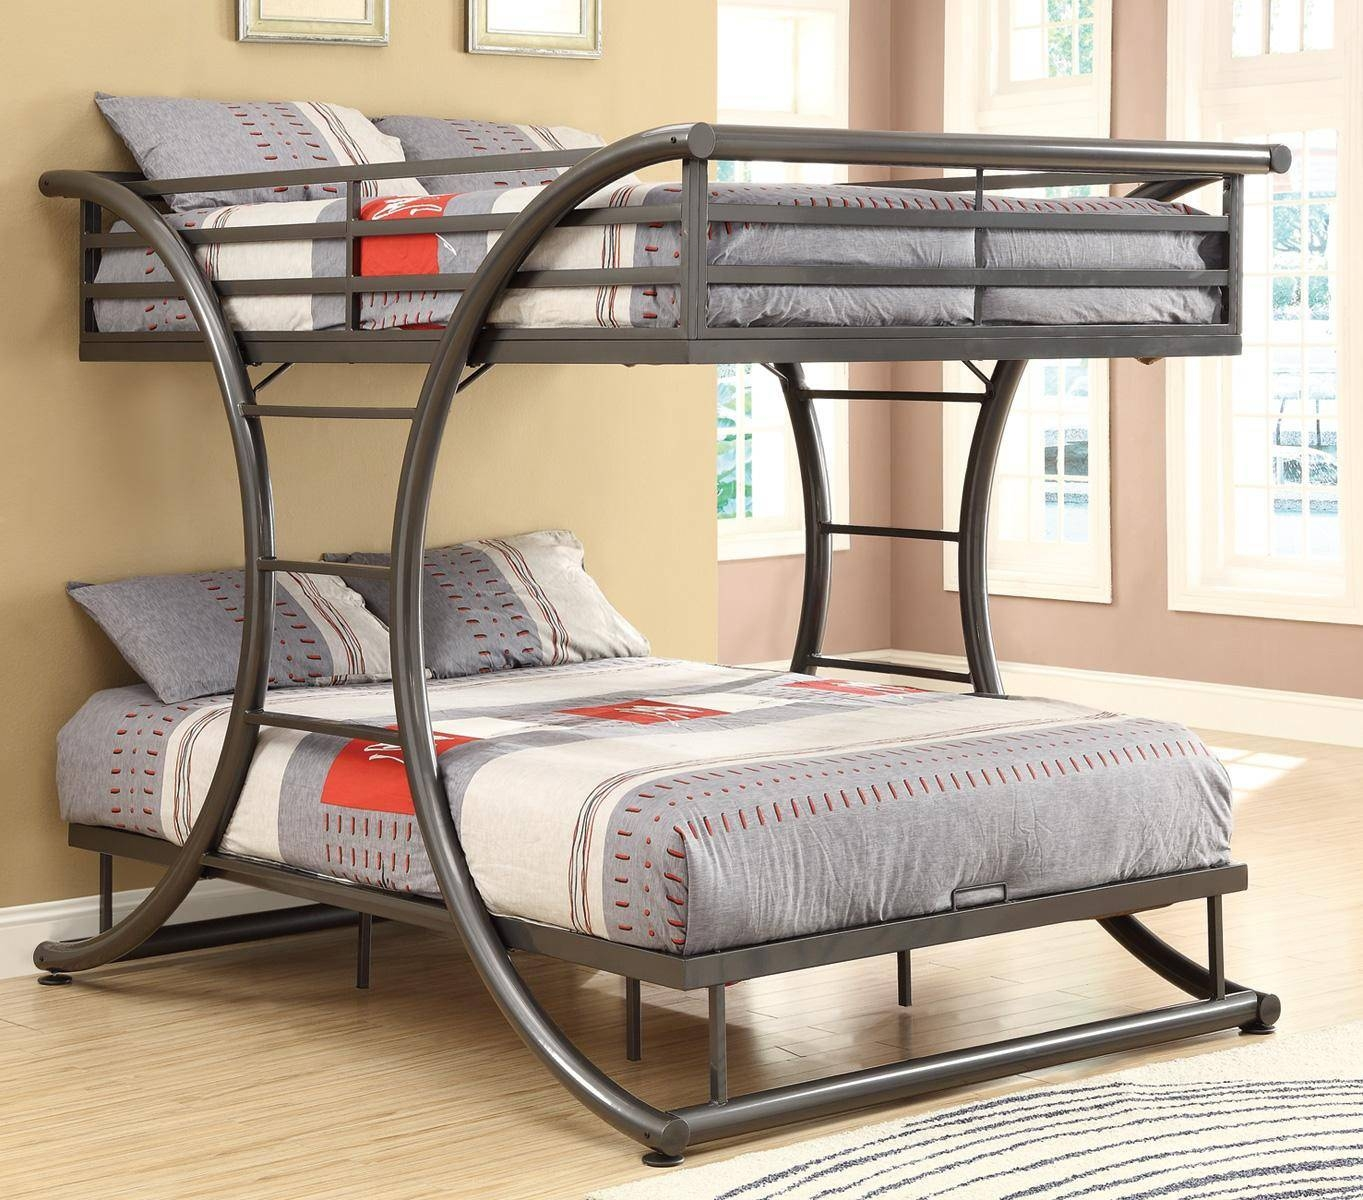 Bunk Beds : Discount Bunk Beds With Stairs Kmart Bunk Beds With regarding Kmart Bunk Bed Mattress (Image 4 of 15)